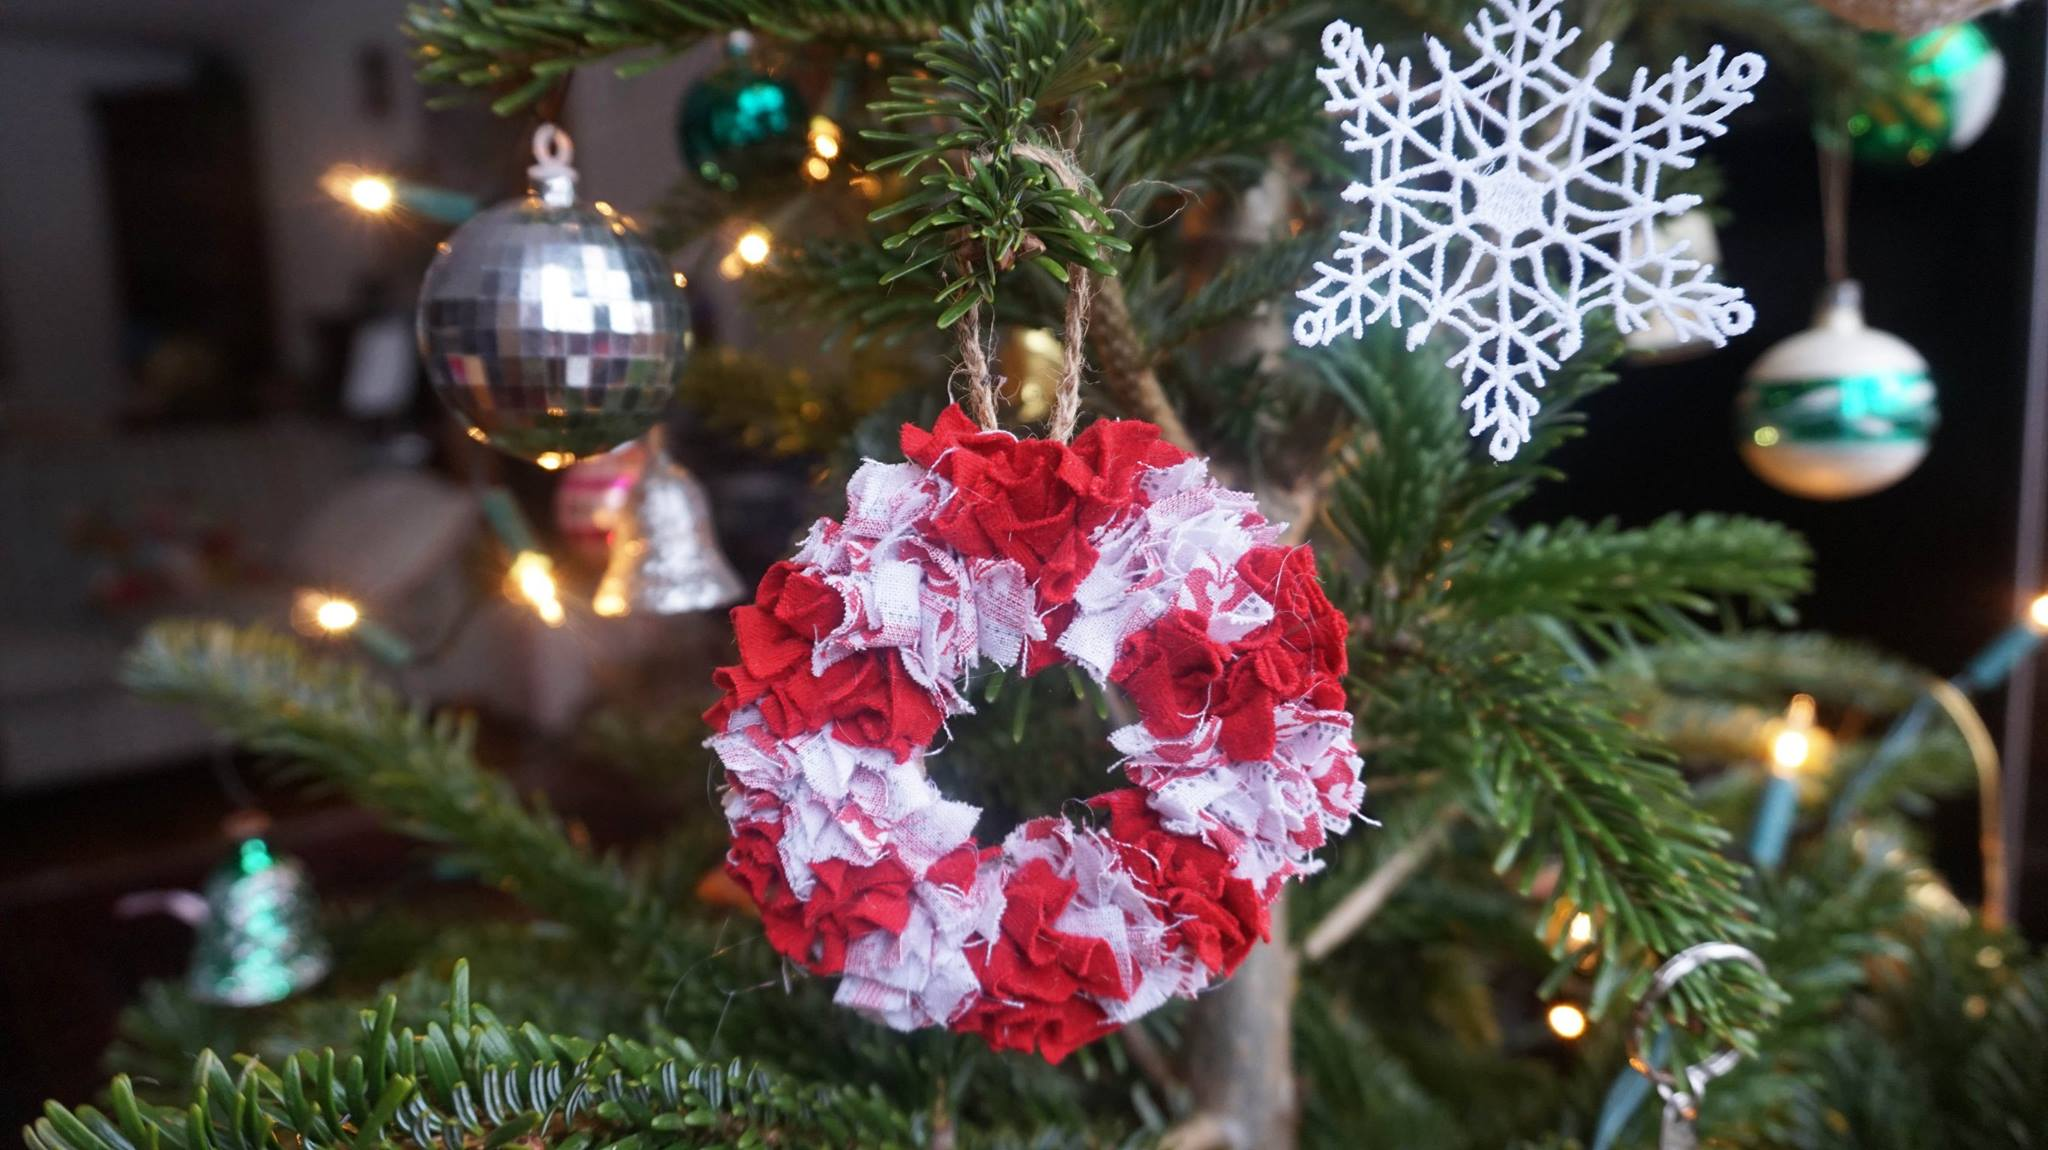 Mini rag rug wreath hanging from a Christmas tree in red and white candy cane stripes.